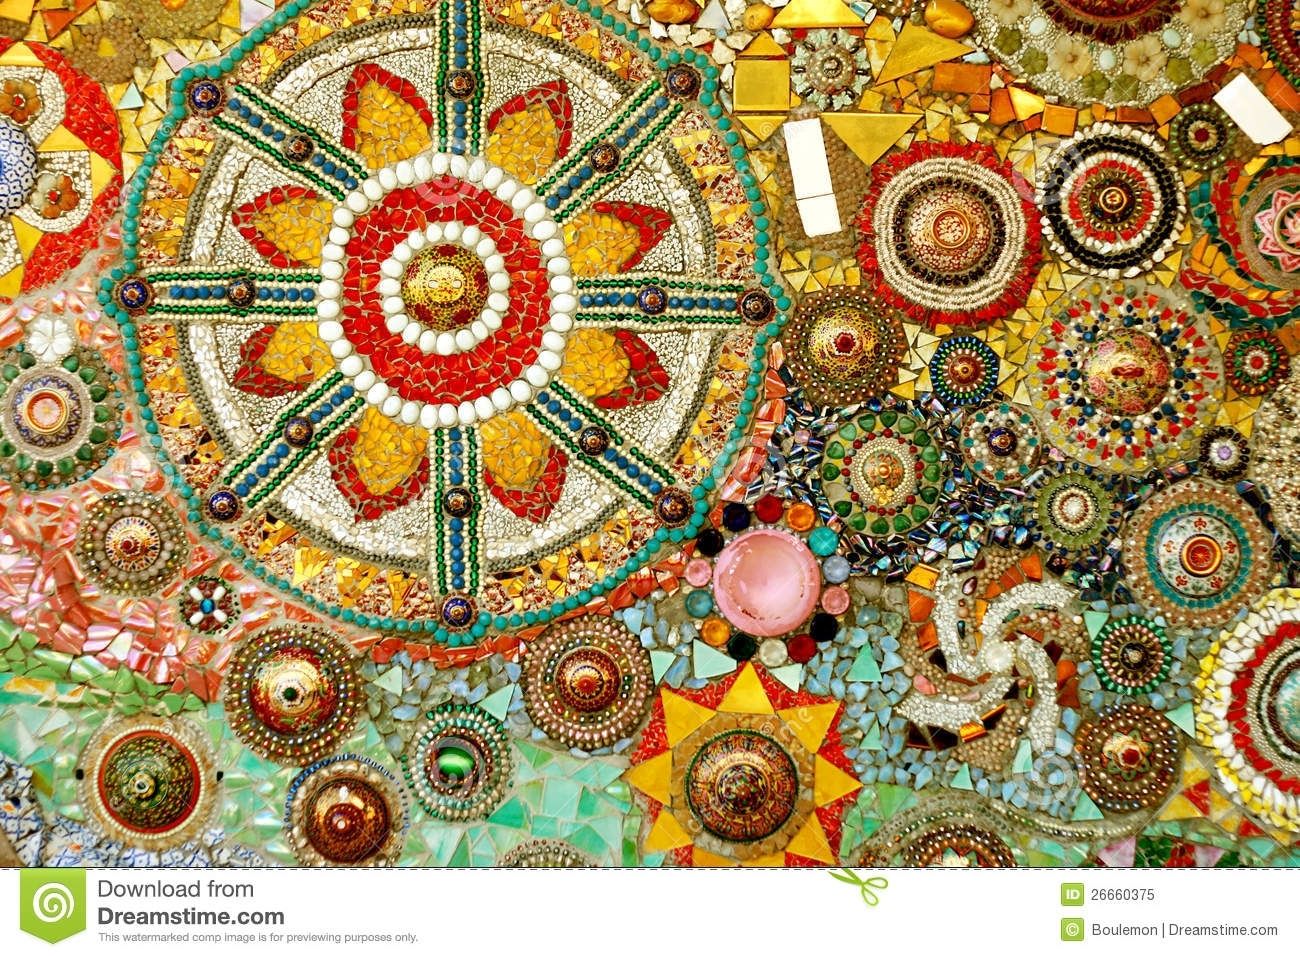 Colorful Glass Mosaic Art And Abstract Wall Backgr Stock Image In Current Abstract Mosaic Art On Wall (View 9 of 20)